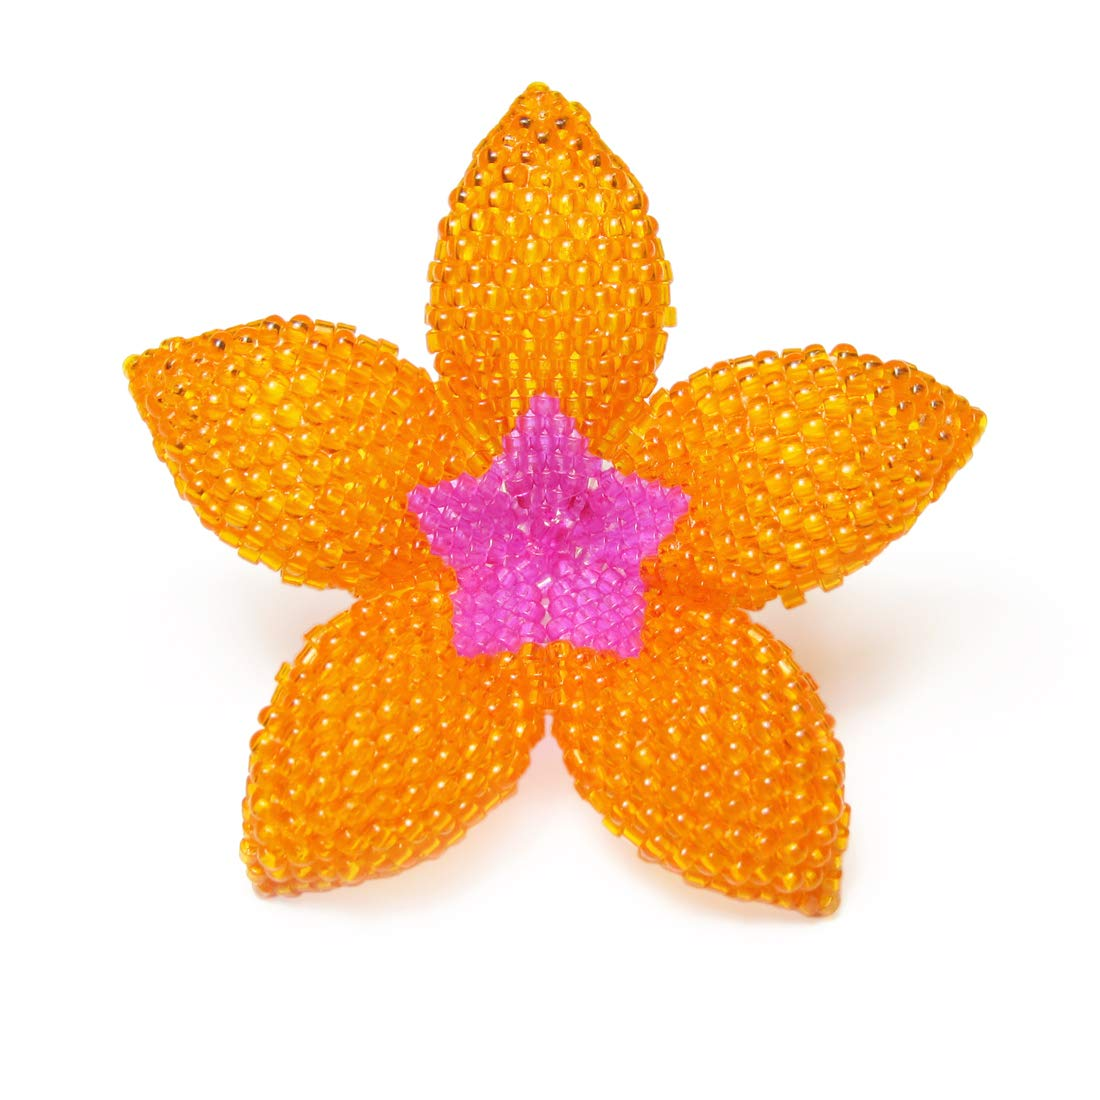 Heart in Hawaii 2-inch Beaded Plumeria Flower Brooch Over 30 Color Choices